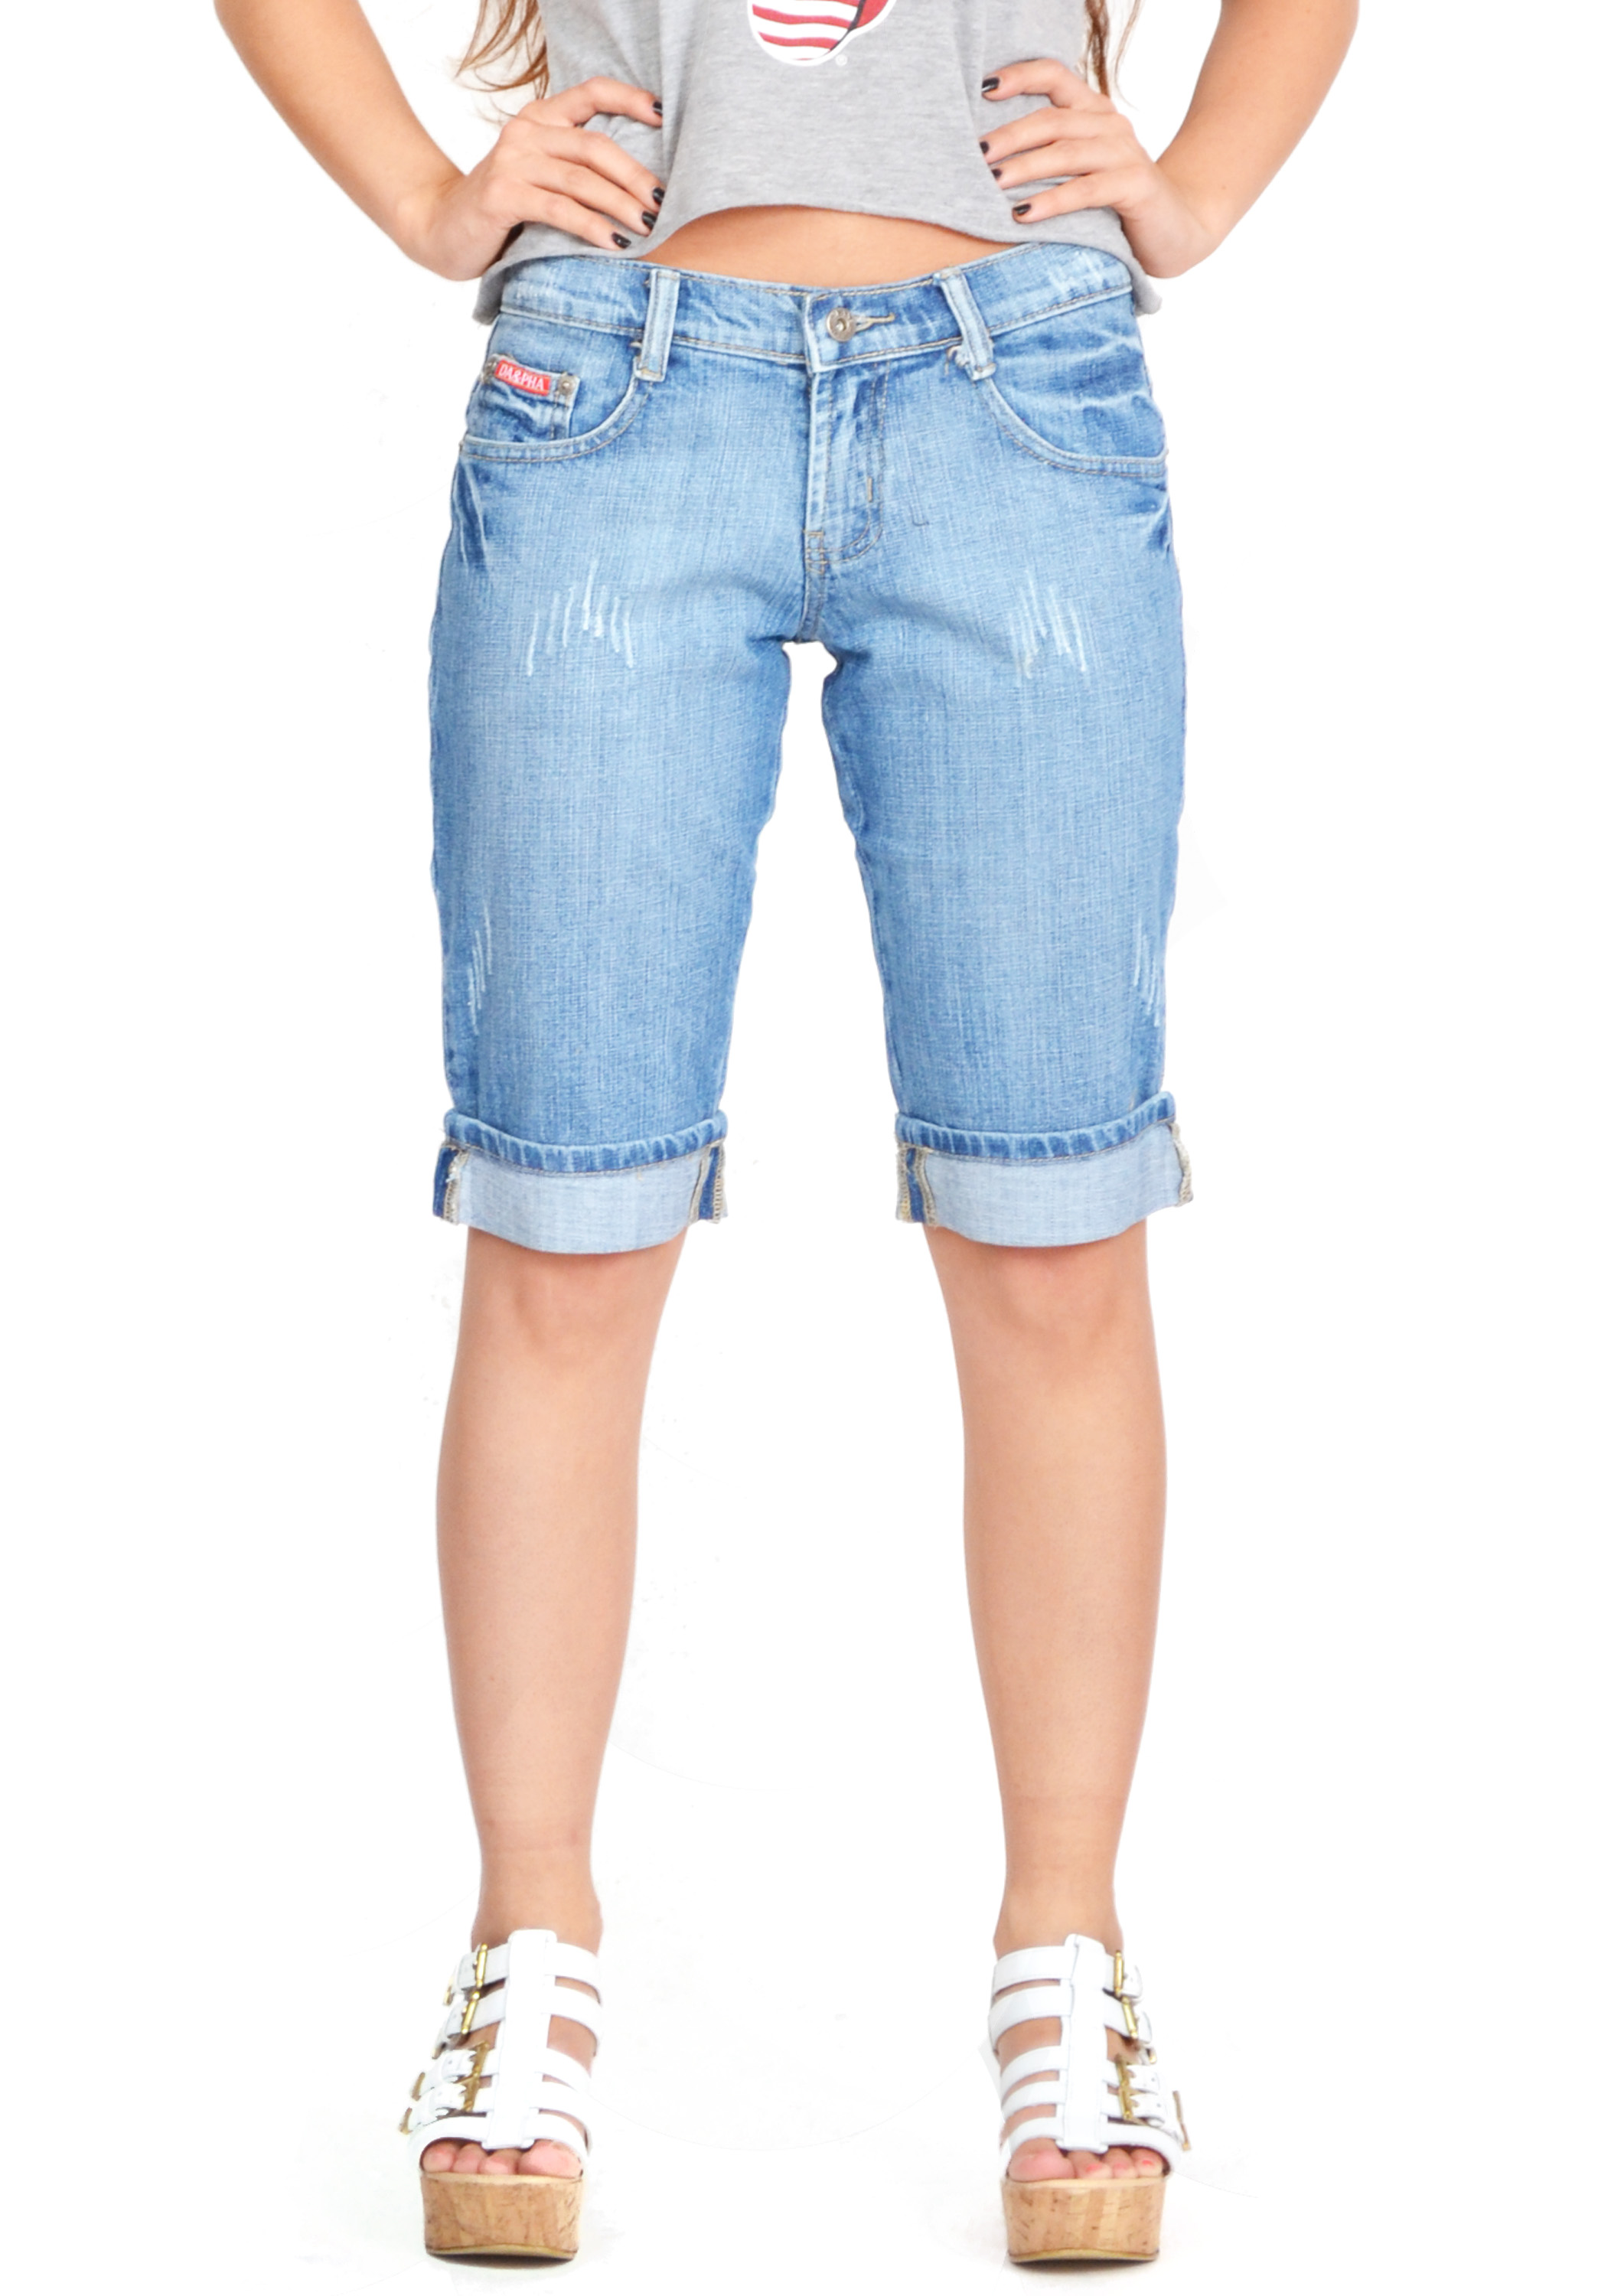 Long Denim Shorts For Women - The Else